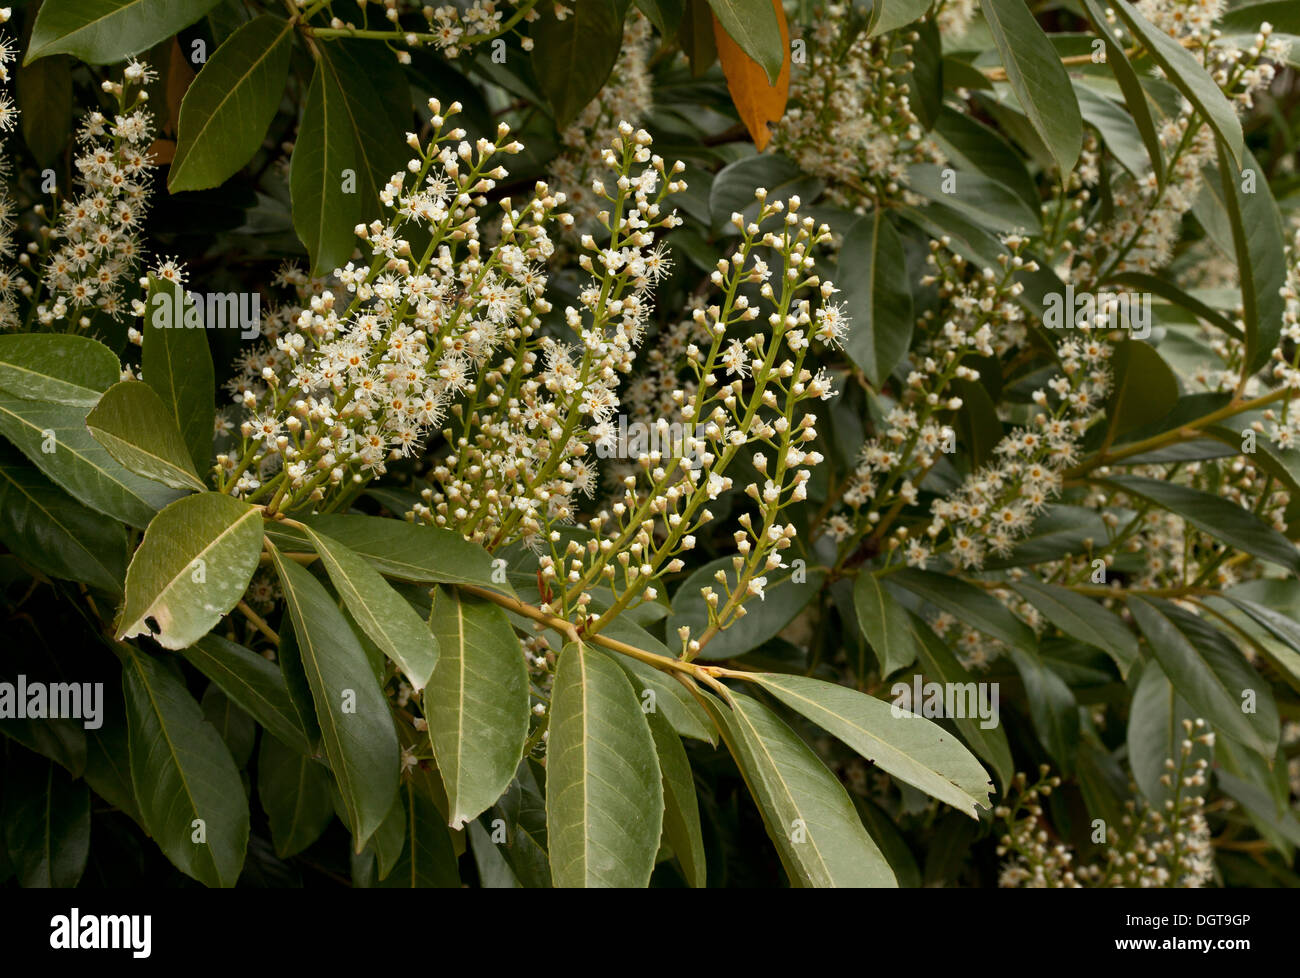 Cherry Laurel, Prunus laurocerasus in flower in spring. - Stock Image